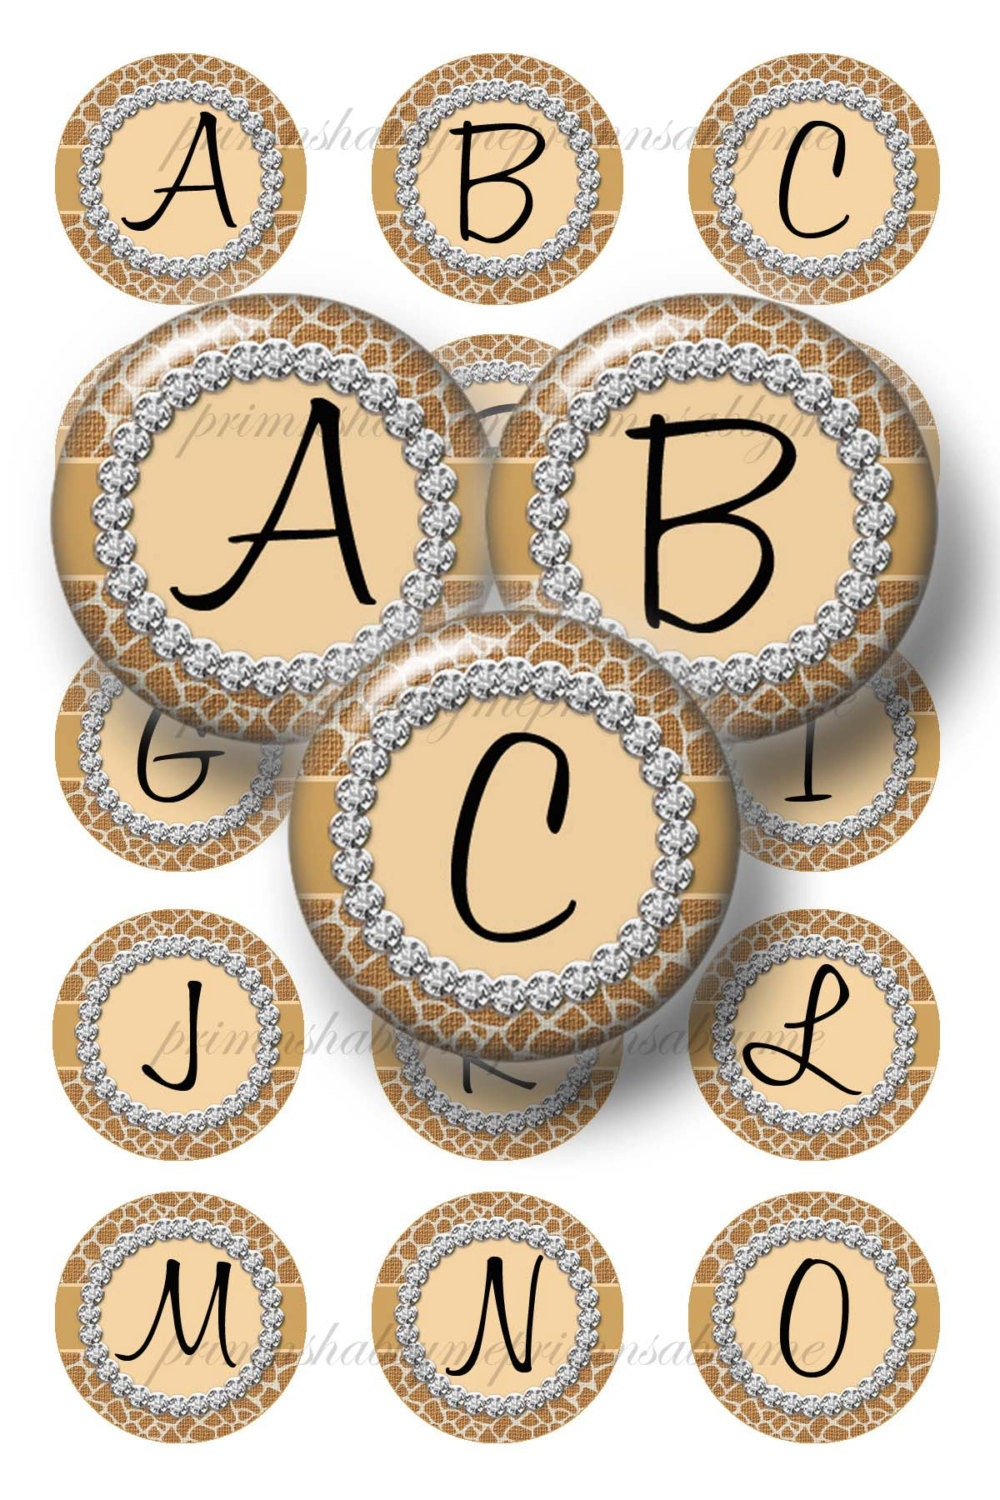 1 Inch Letters Alphabet Letters 1 Inch Circle Bottle Cap Images Digital